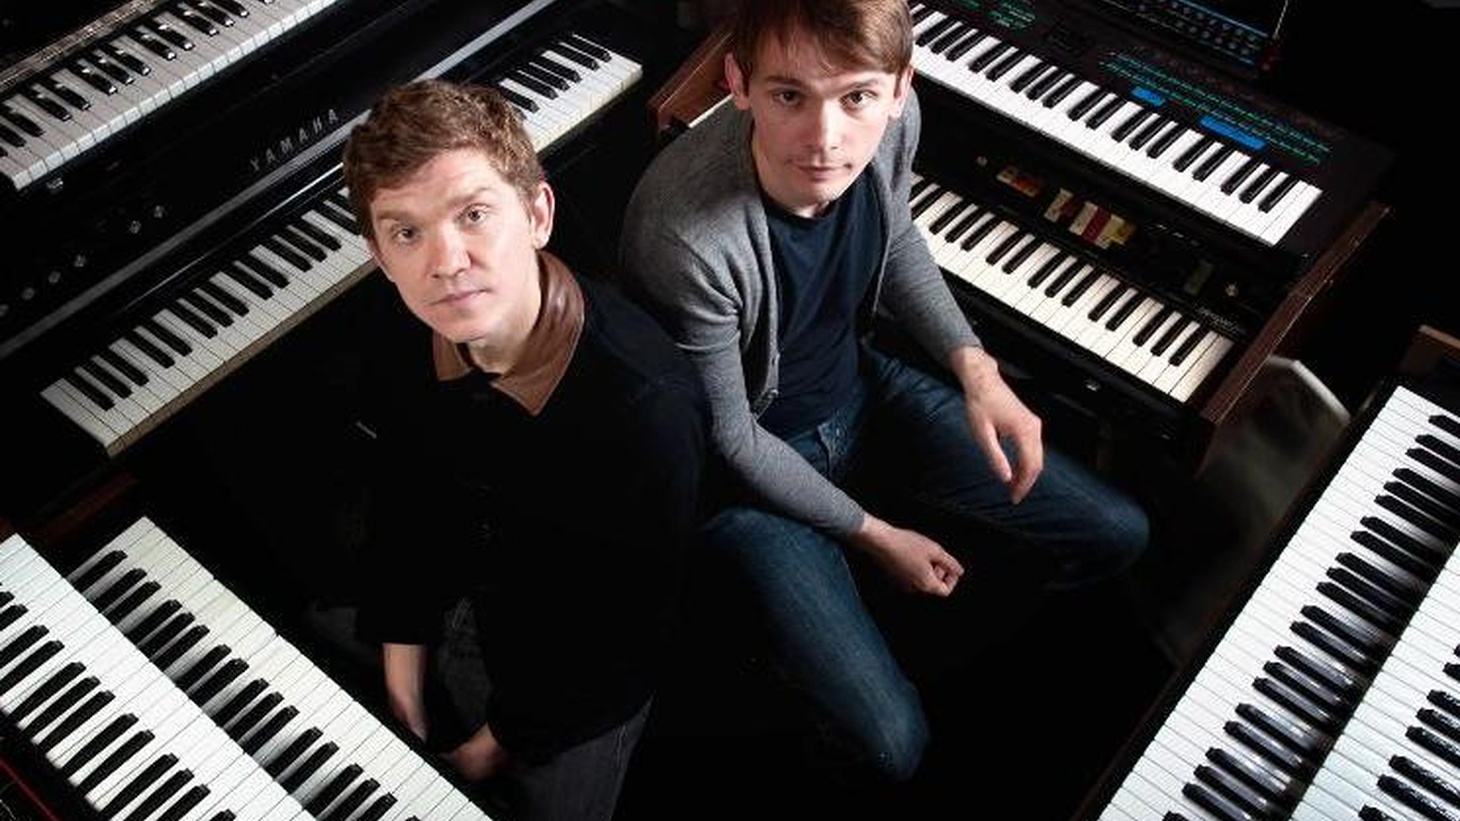 Brothers Peter and David Brewis create cinematic songs tinged with prog-rock for their project Field Music. After a two-year break, they're back with a fantastic new CD.